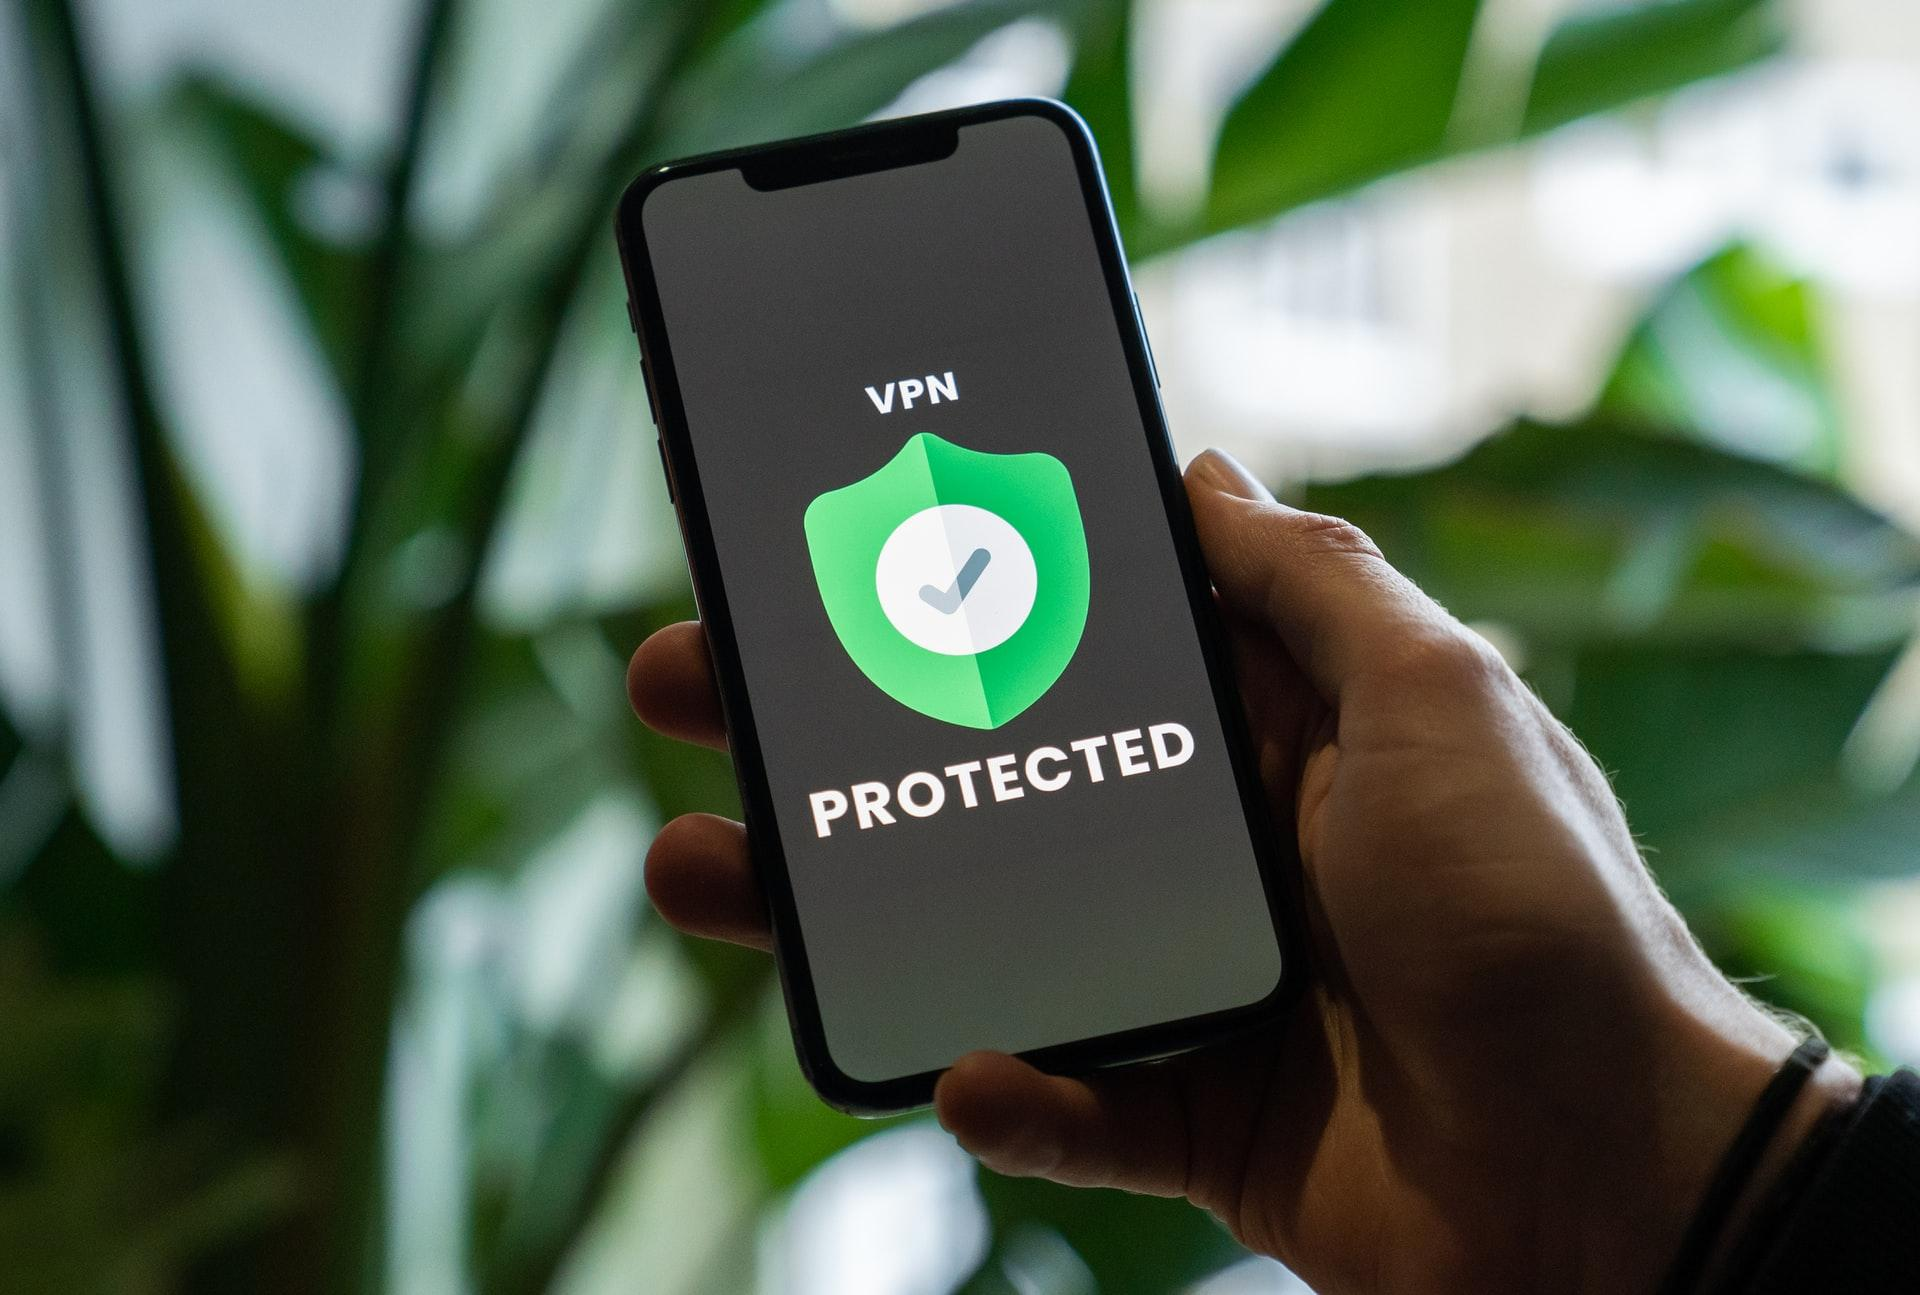 How does a VPN protect user privacy and anonymity?